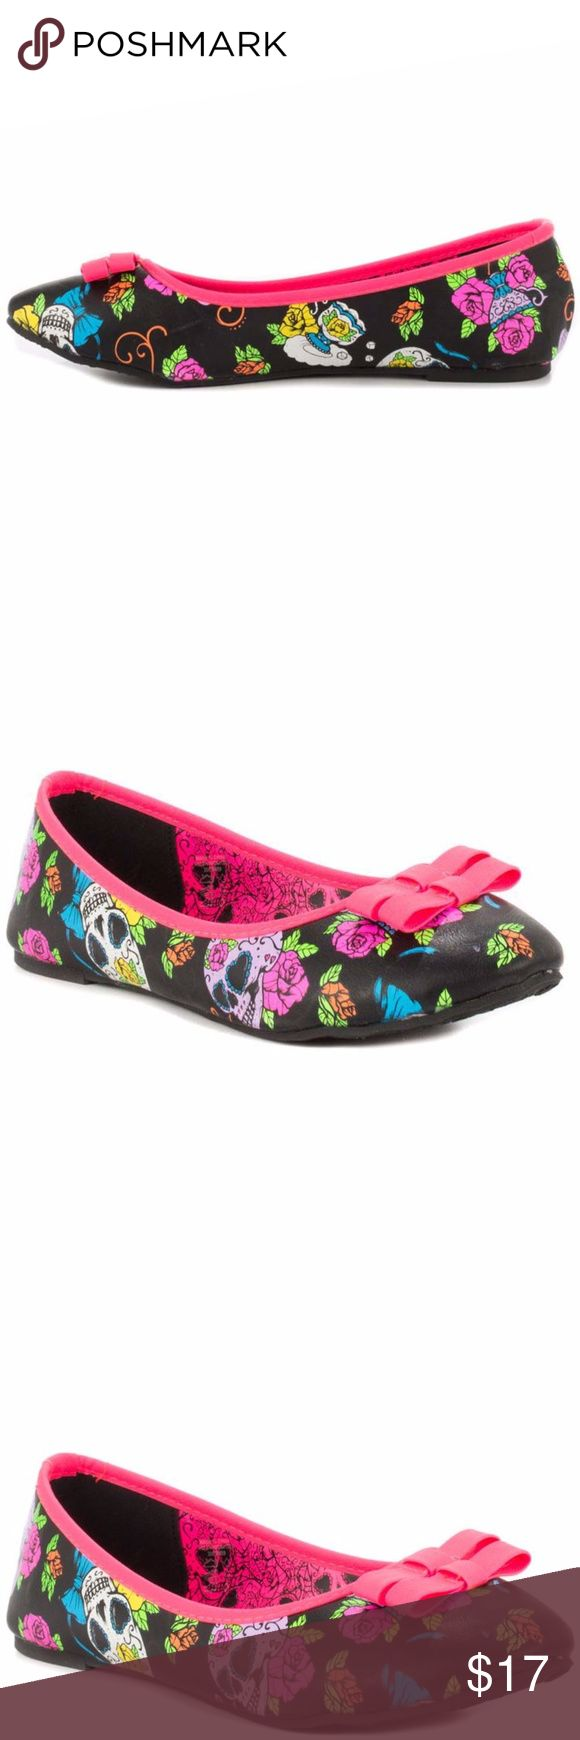 Iron Fist Sweet Tooth Flats You might get a cavity from the Sweet Tooth! These Iron Fist flats feature a black synthetic leather with skull and floral print. Bright hot pink piping, and double bow contrast perfectly to this colorful look. Brand new, never worn! Iron Fist Shoes Flats & Loafers